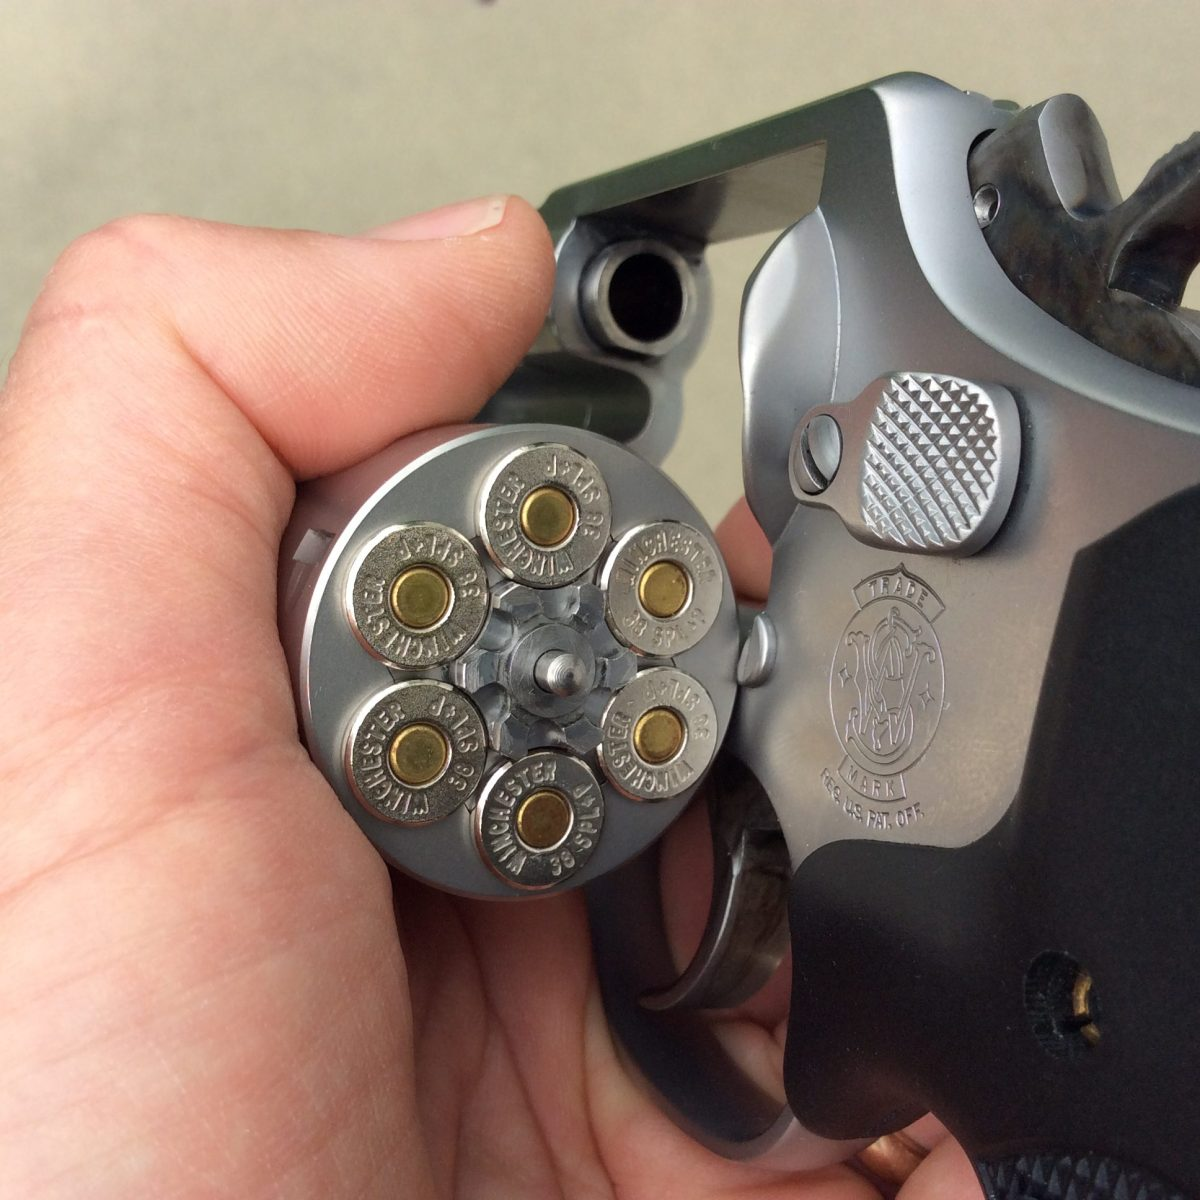 How To Safely Unload a Double Action Revolver